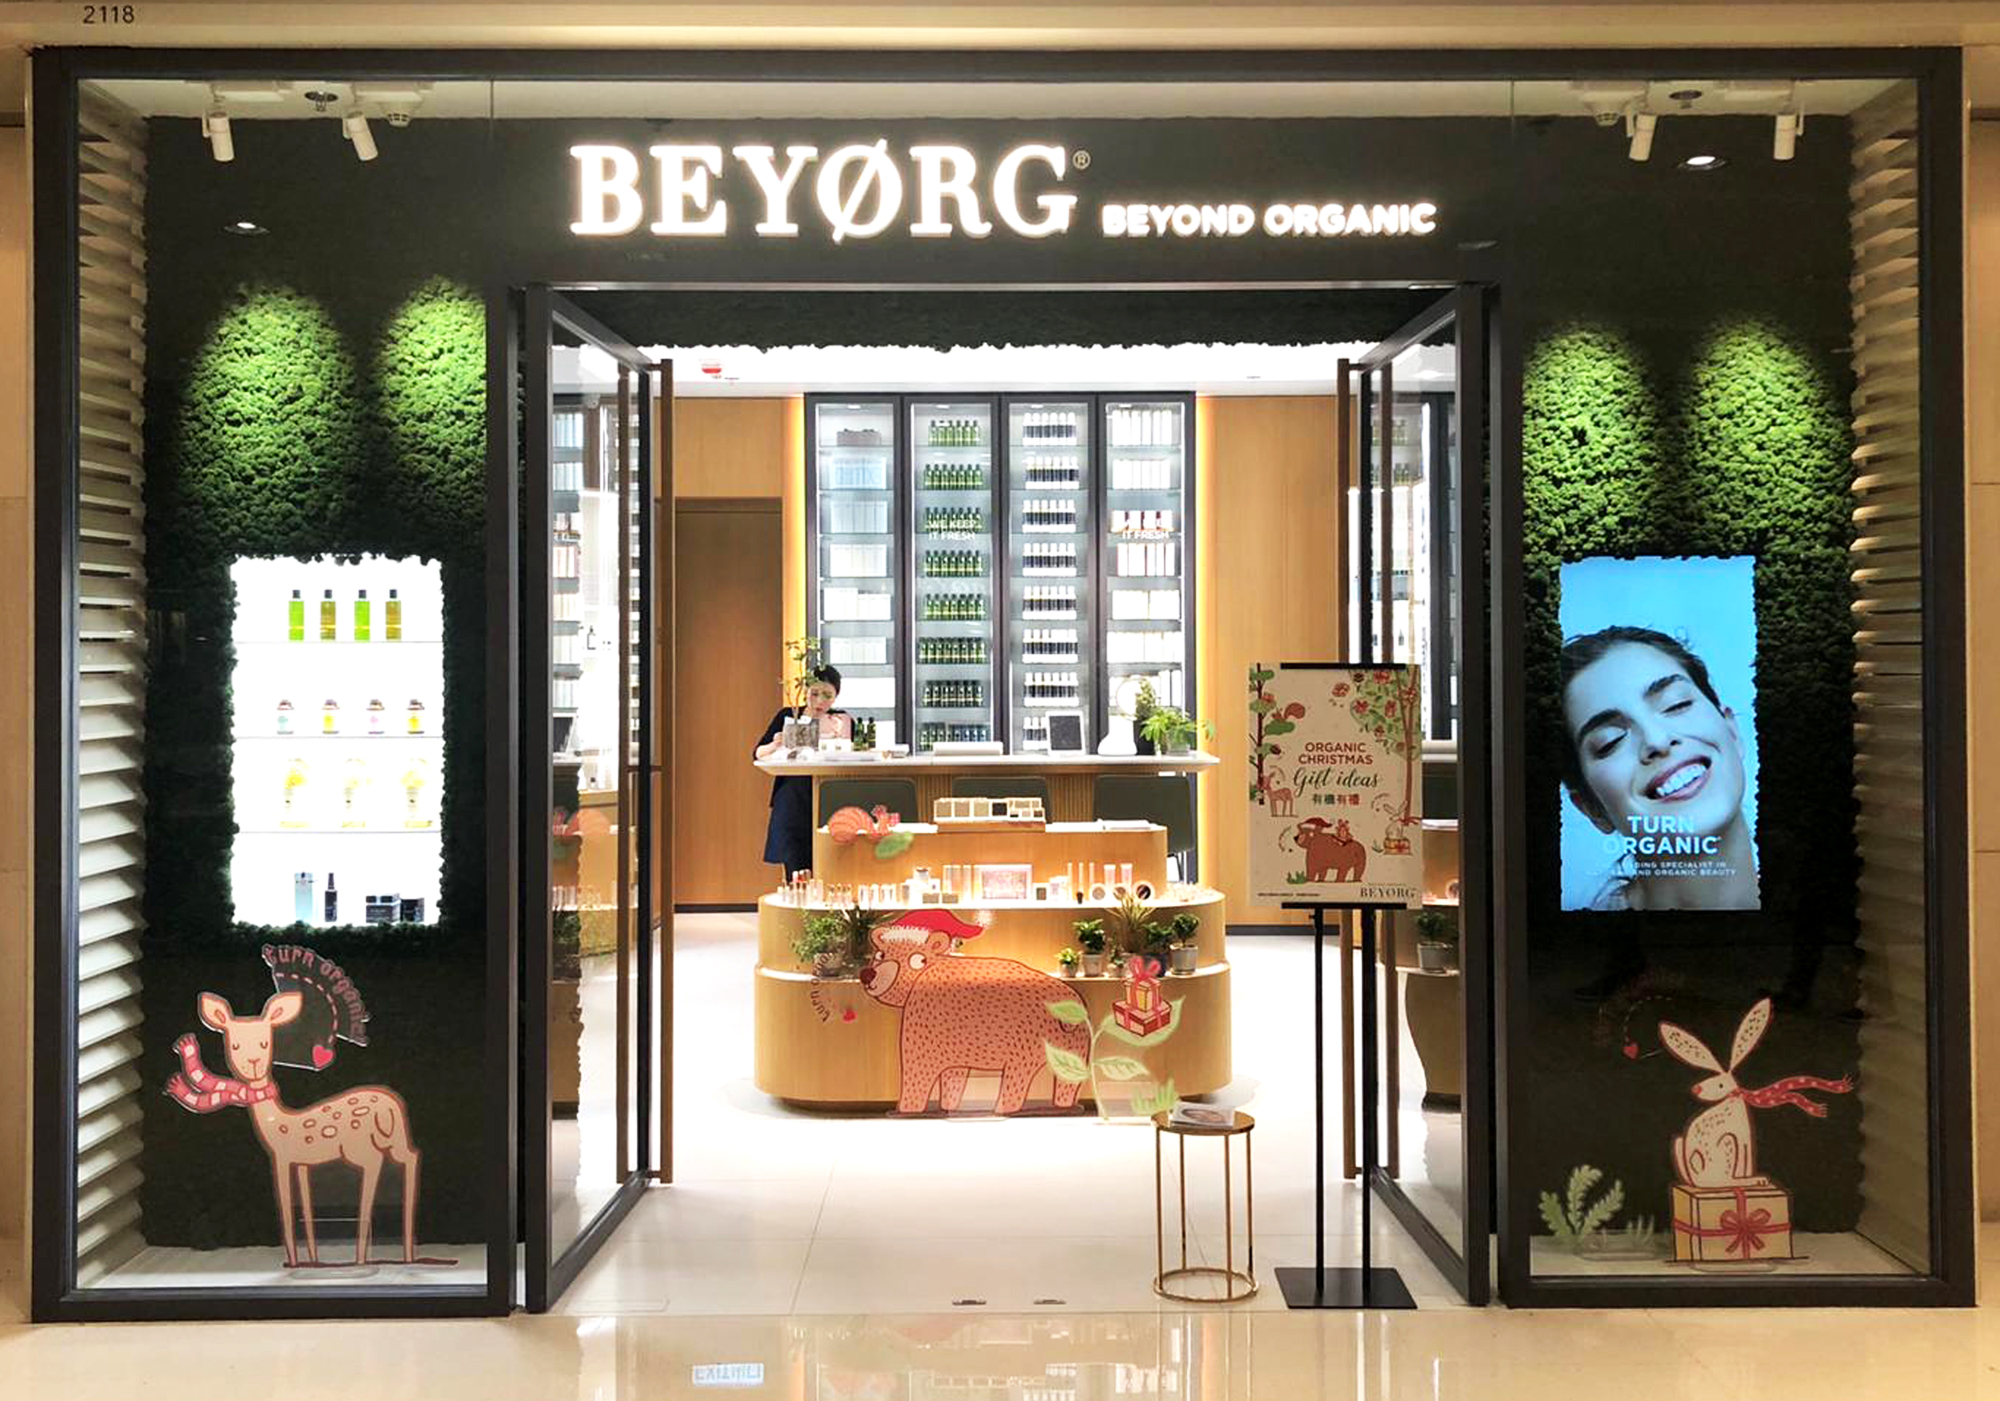 BEYORG cosmetic store Christmas display